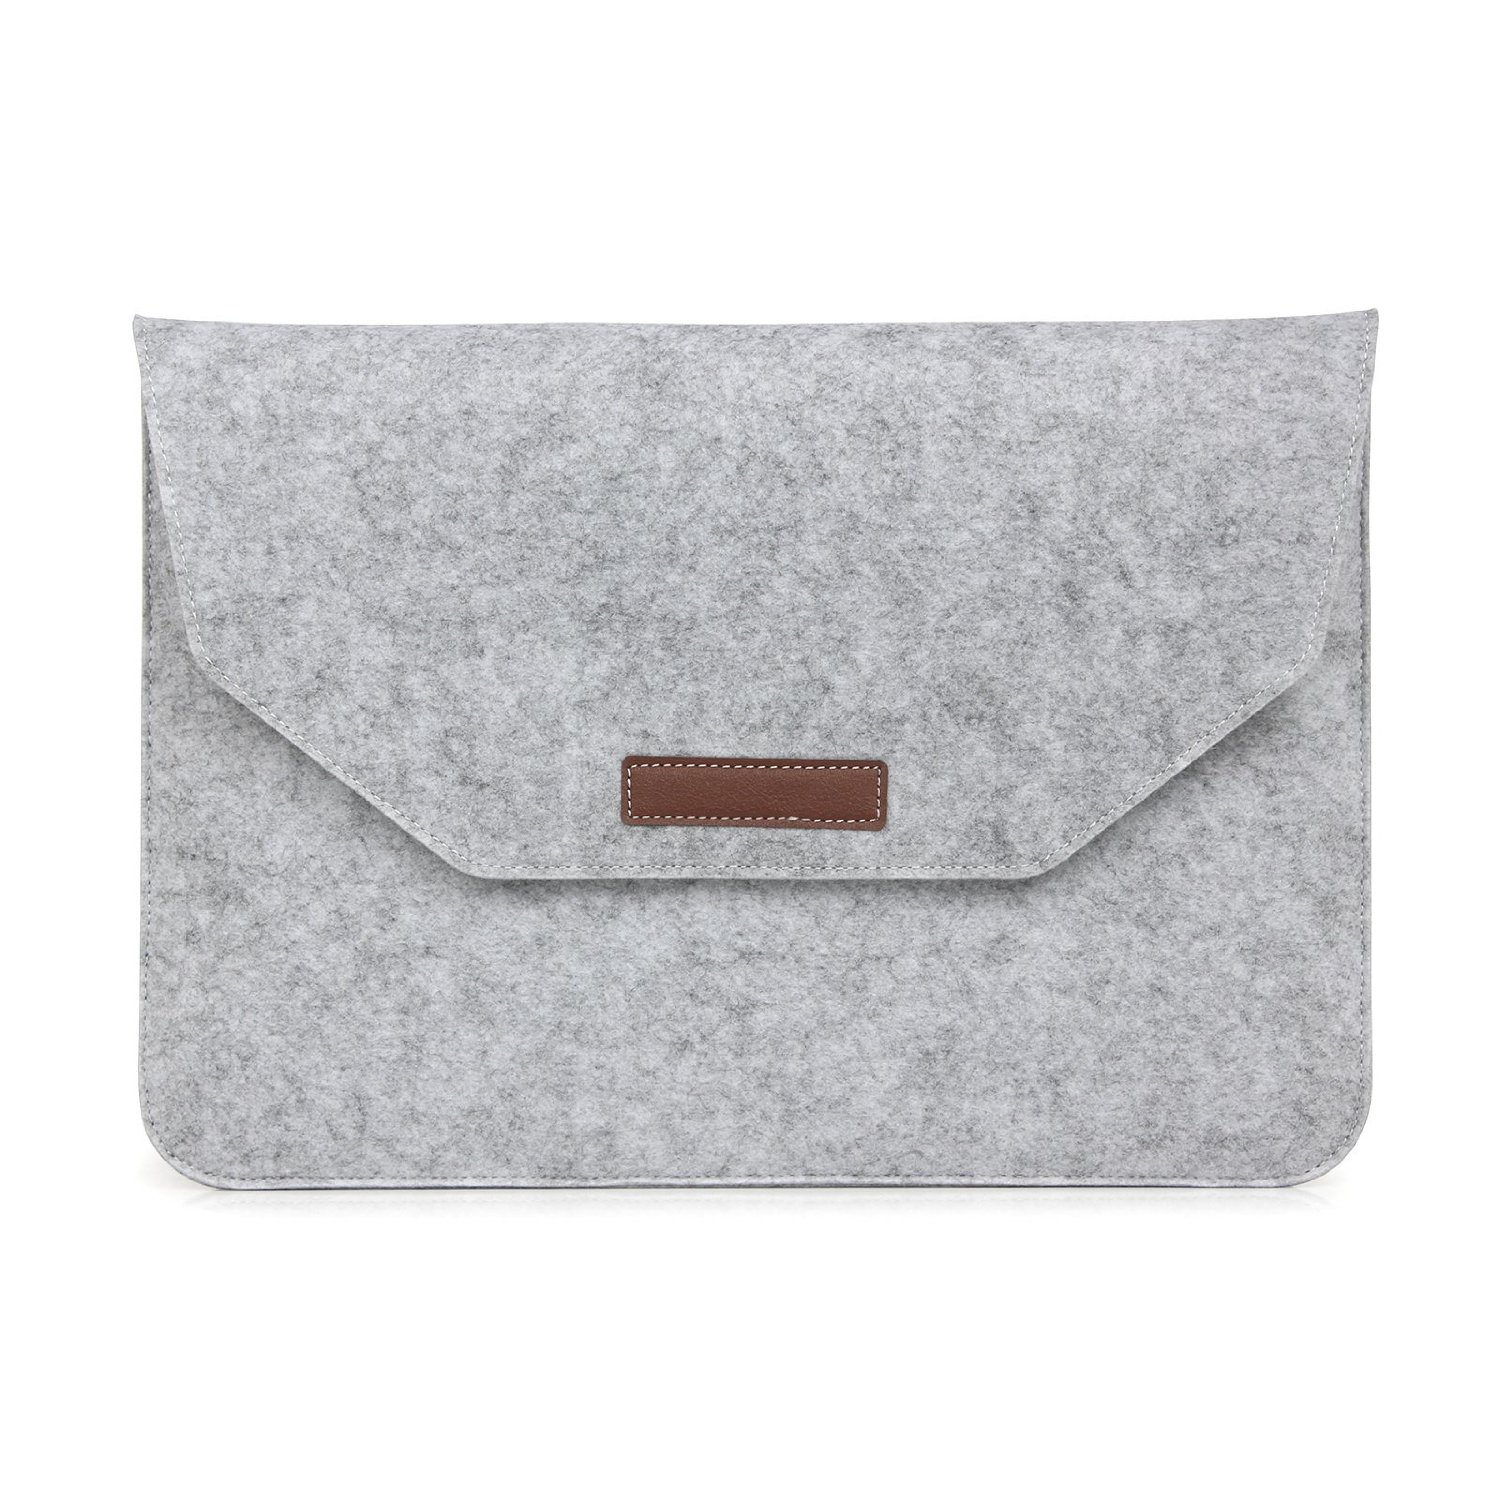 Sleeve Bag for Macbook Laptop, Arroker Artificial Wool Portable Carrying Case for 11.6'' Macbook Air / 13.3''-15.4'' Macbook Pro / 2015 New Macbook 12'' (Fit for 15.4'' RETINA)